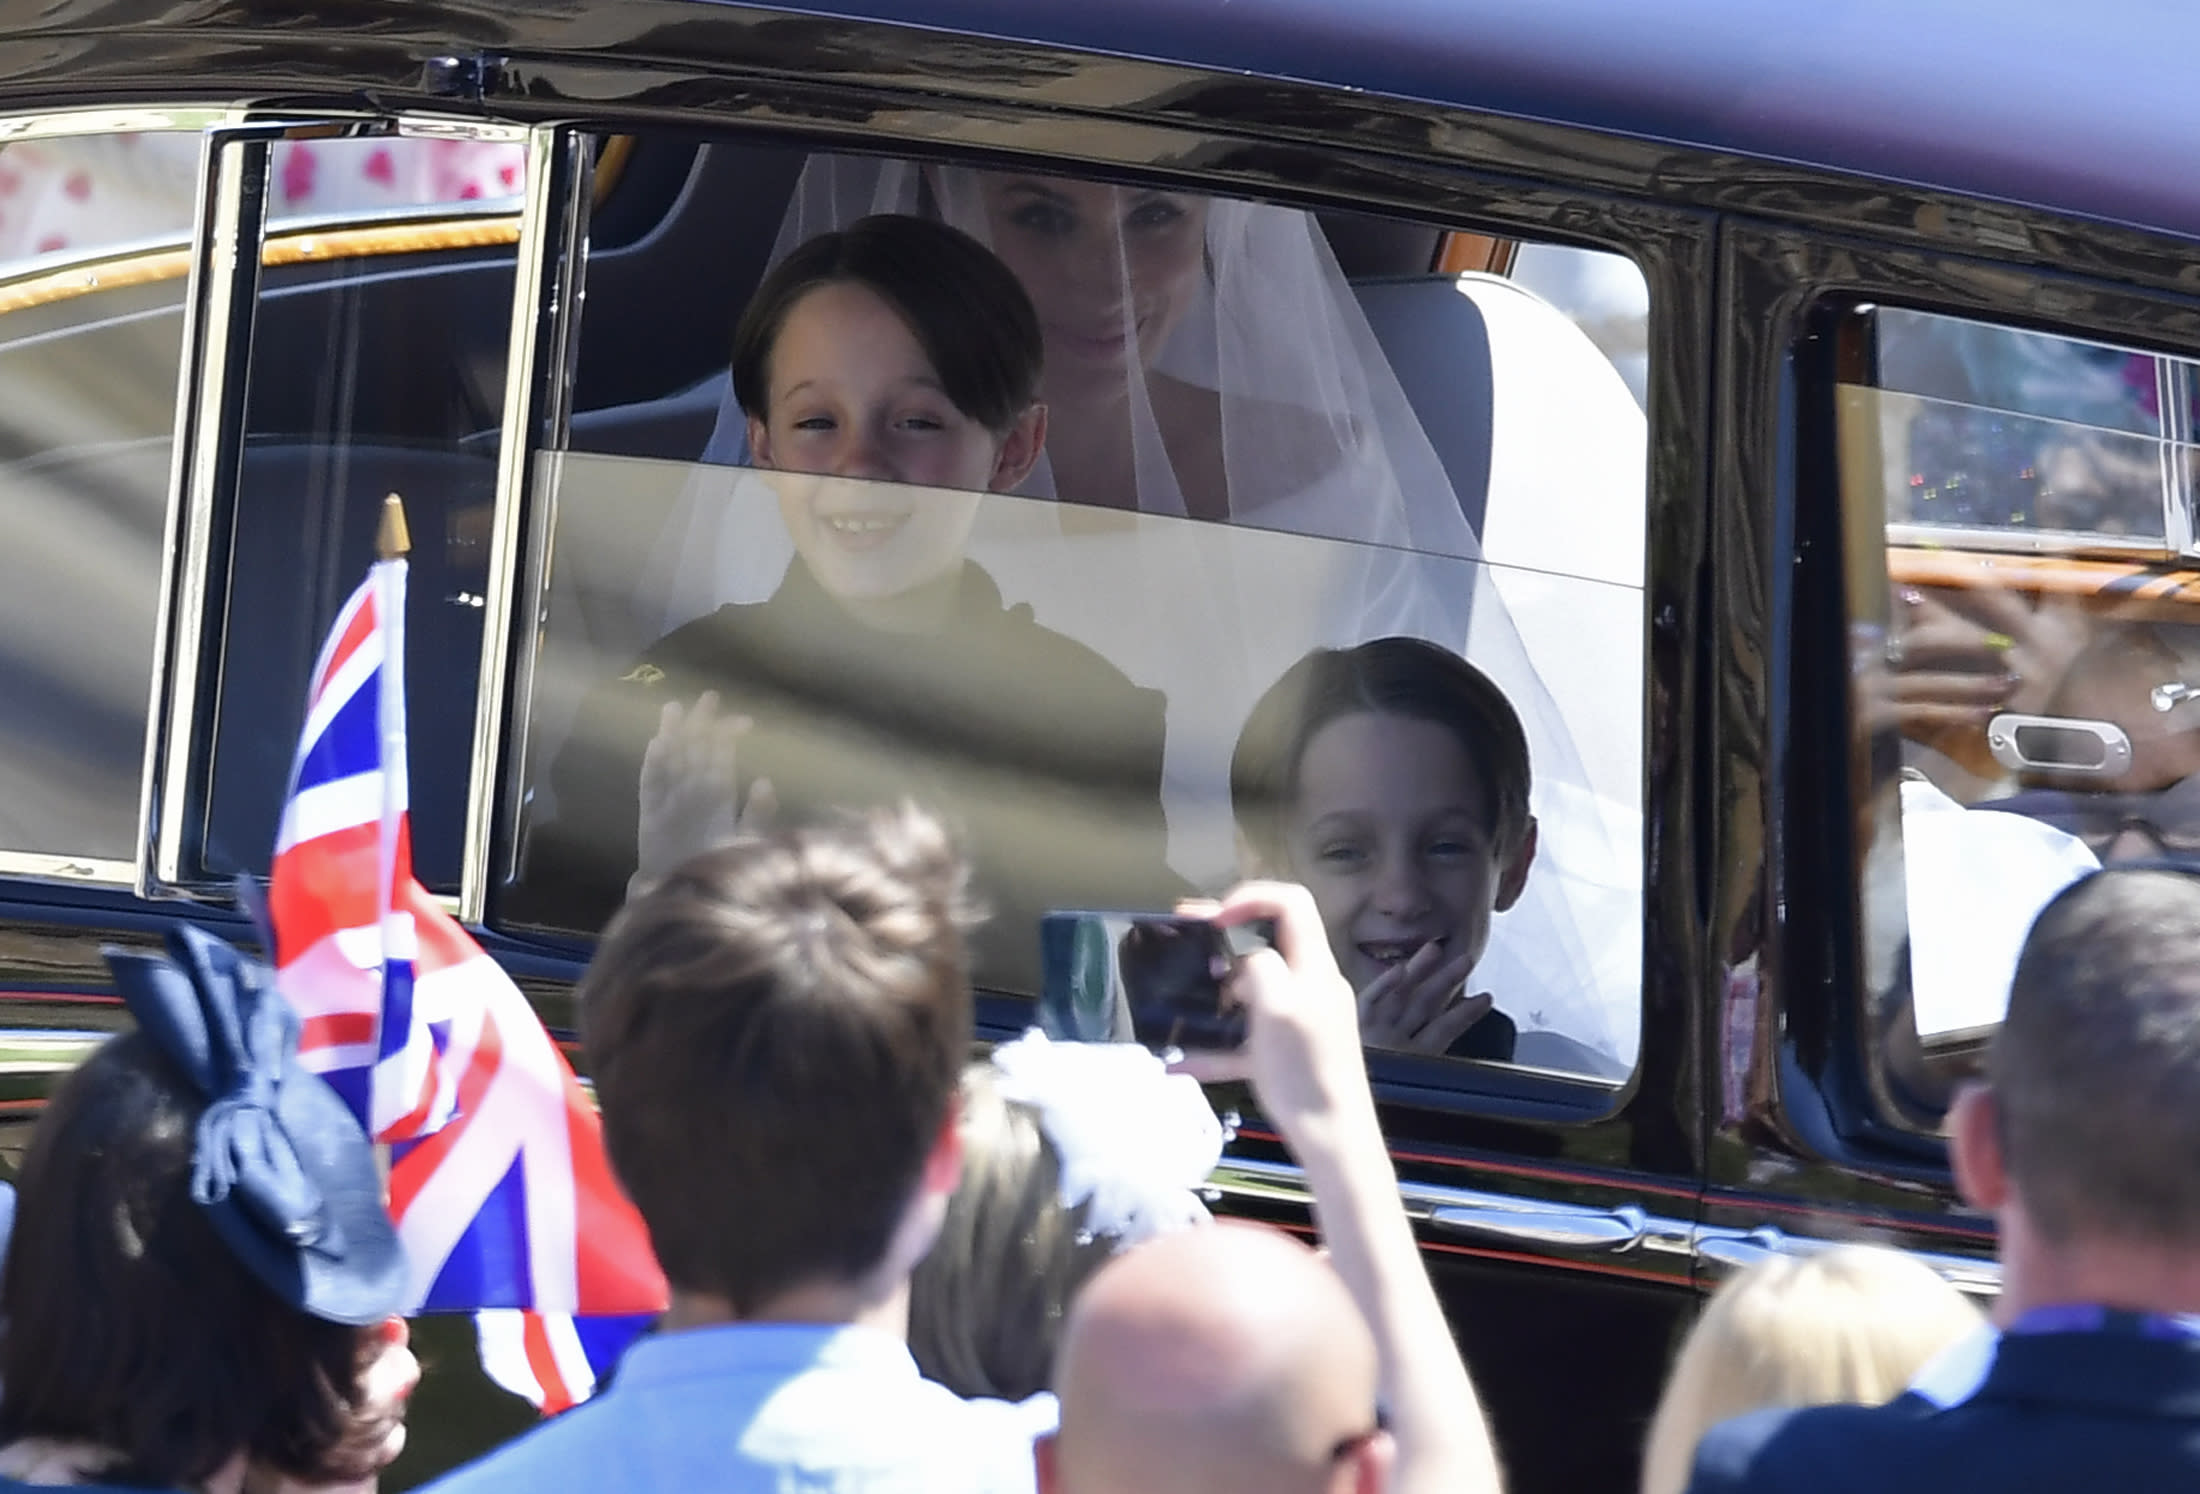 <p>Meghan Markle is driven to St George's Chapel in Windsor Castle along with her page boys Brian and John Mulroney at St George's Chapel at Windsor Castle before the wedding of Prince Harry to Meghan Markle on May 19, 2018 in Windsor, England.</p>  <p>(Photo by Toby Melville- WPA Pool/Getty Images)</p>